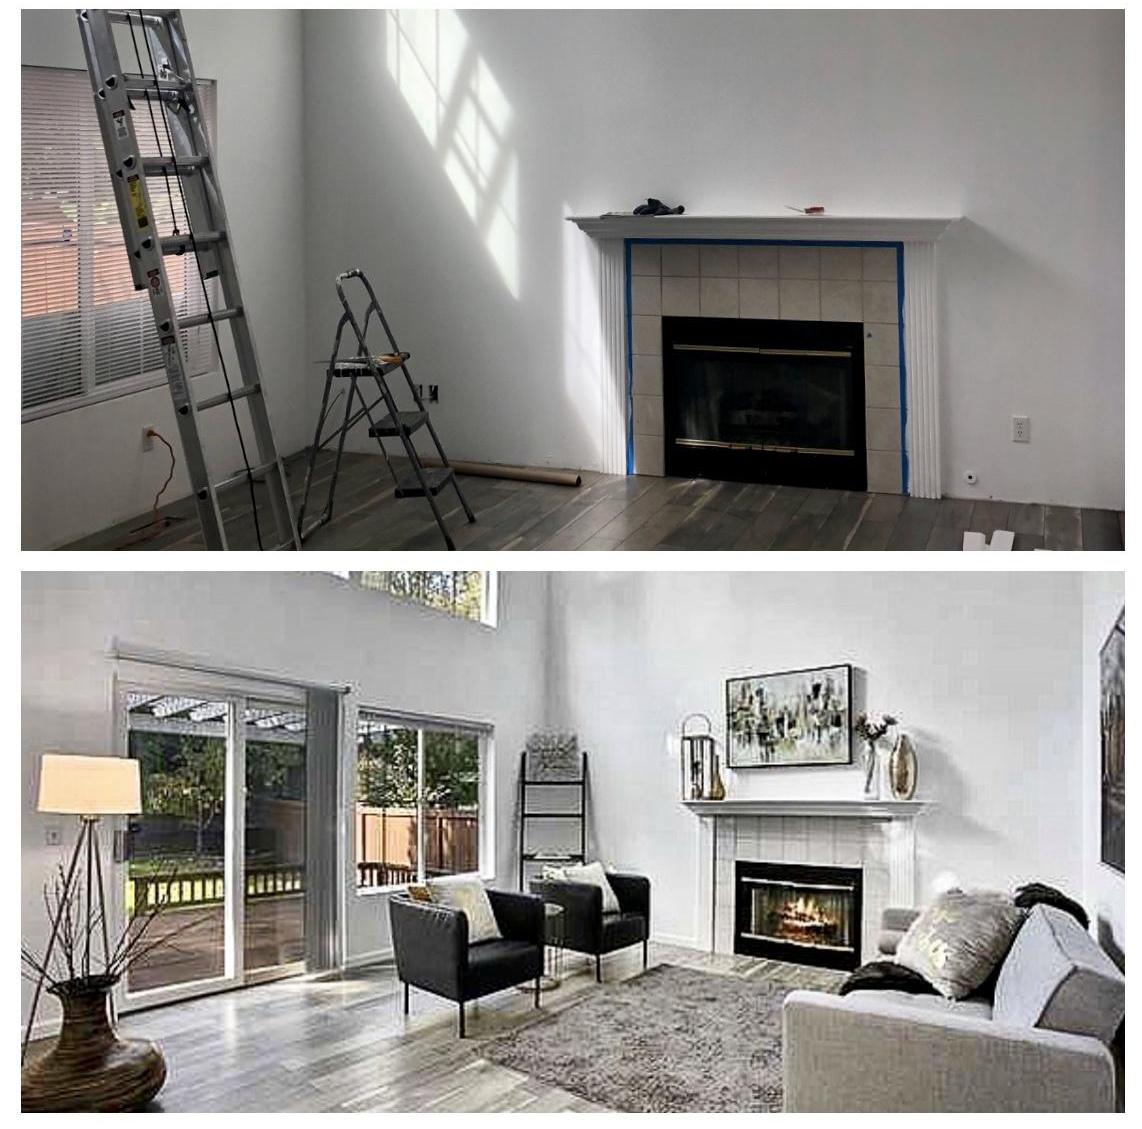 Before and after staging with furniture rental.